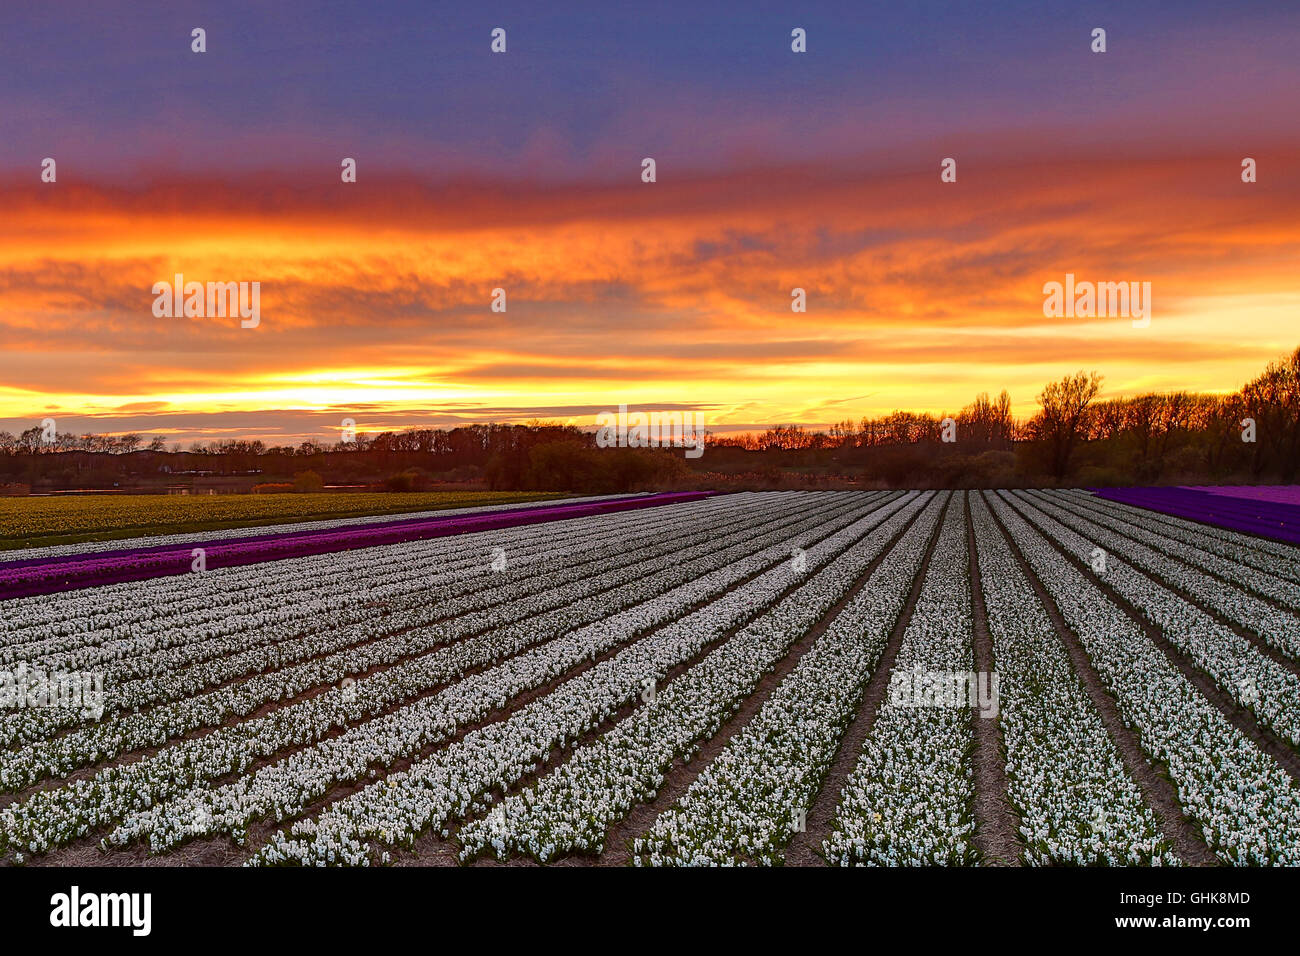 Flower field sunset High Definition Sunset Over Dutch Flower Field With Hyacinths Near The Keukenhof In Lisse The Netherlands Photo Taken On April 12 2016 Alamy Sunset Over Dutch Flower Field With Hyacinths Near The Keukenhof